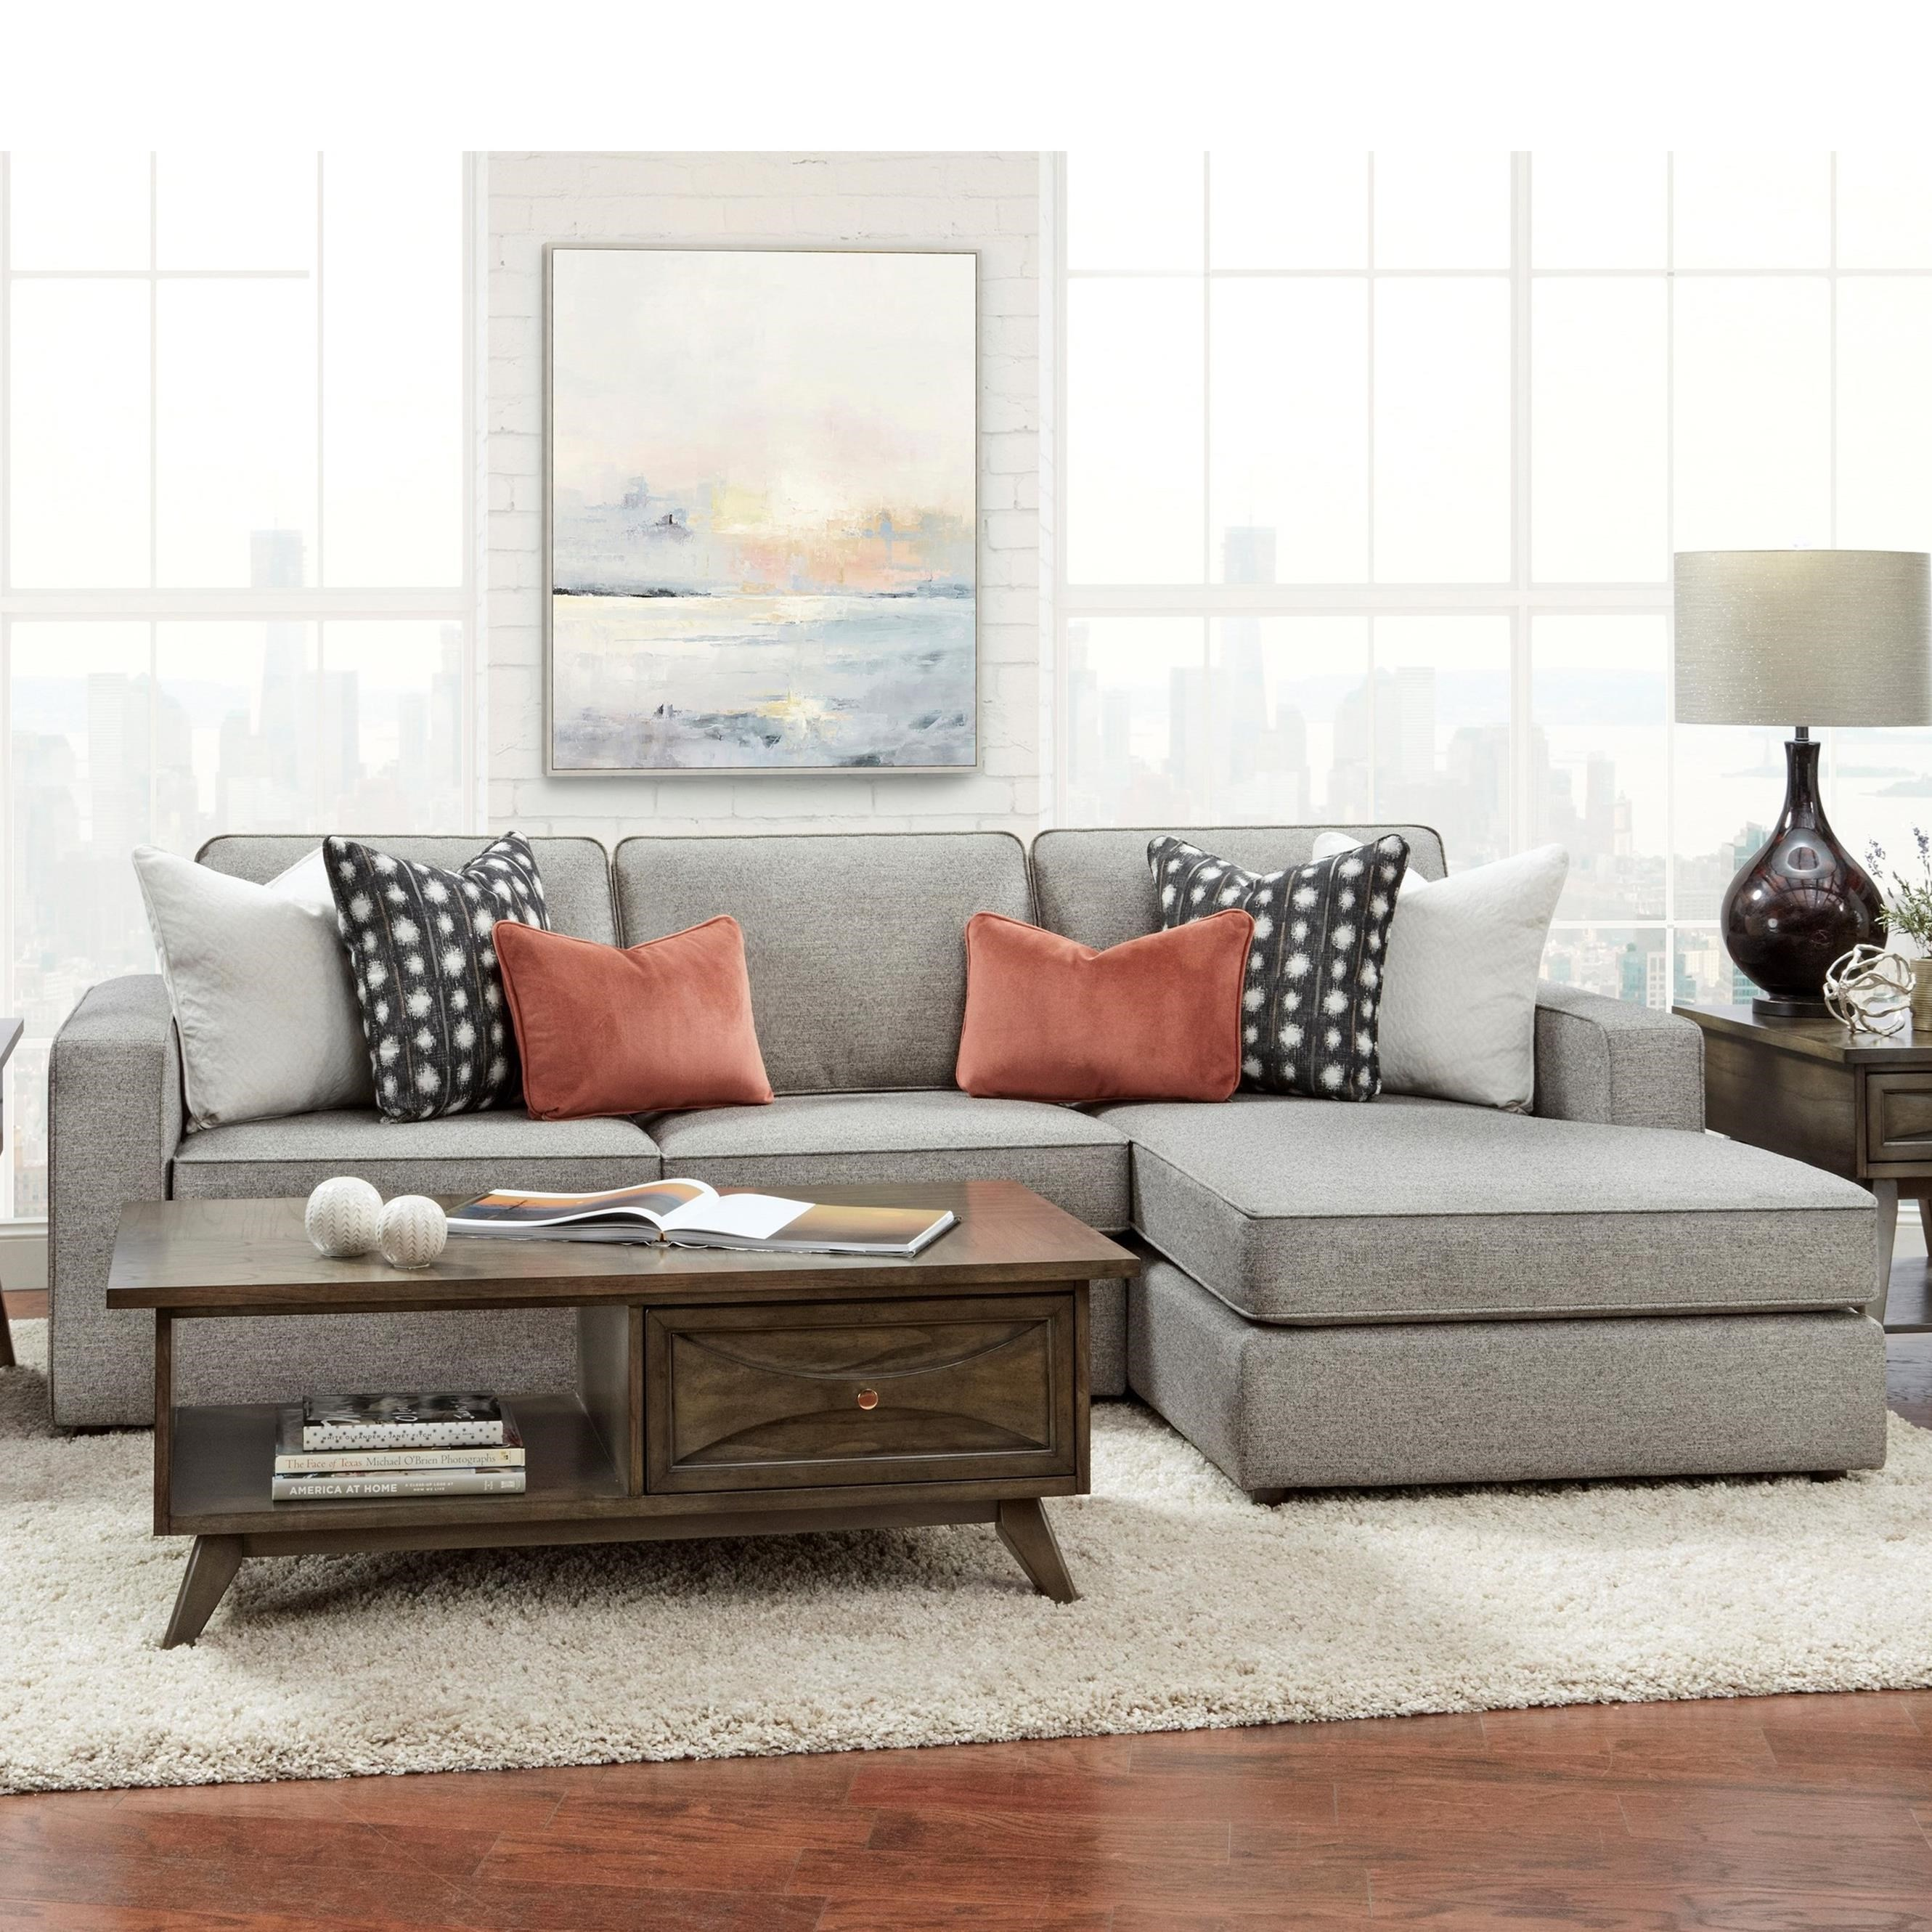 2-Piece Sofa Chaise